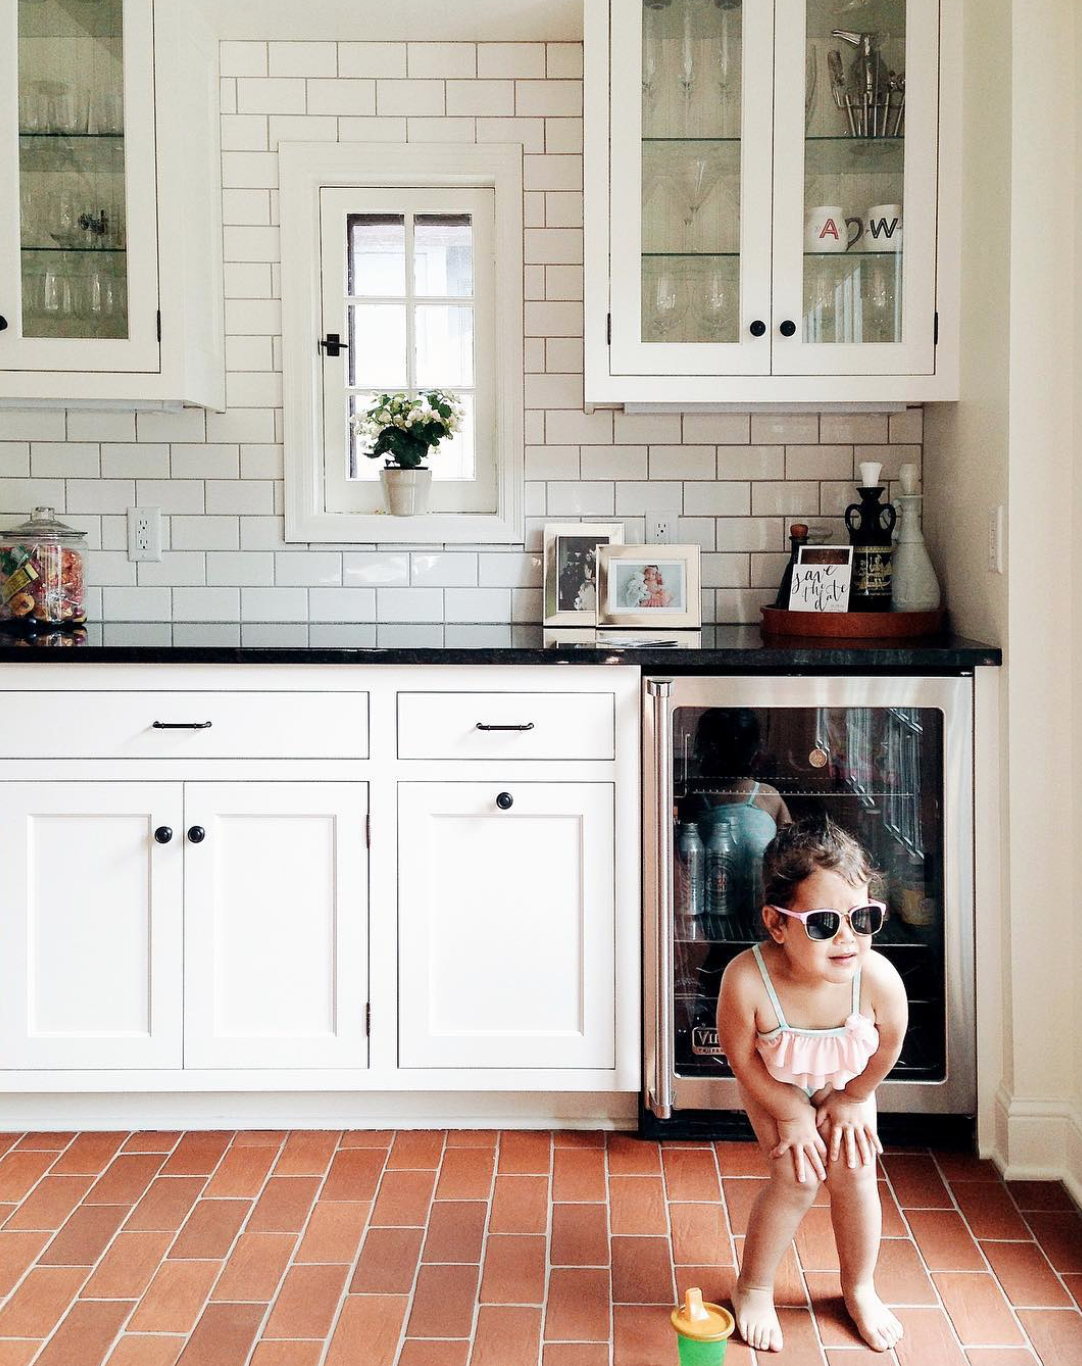 Country Living: 11 Instagram Accounts Every 'Fixer Upper' Fan Needs to Follow